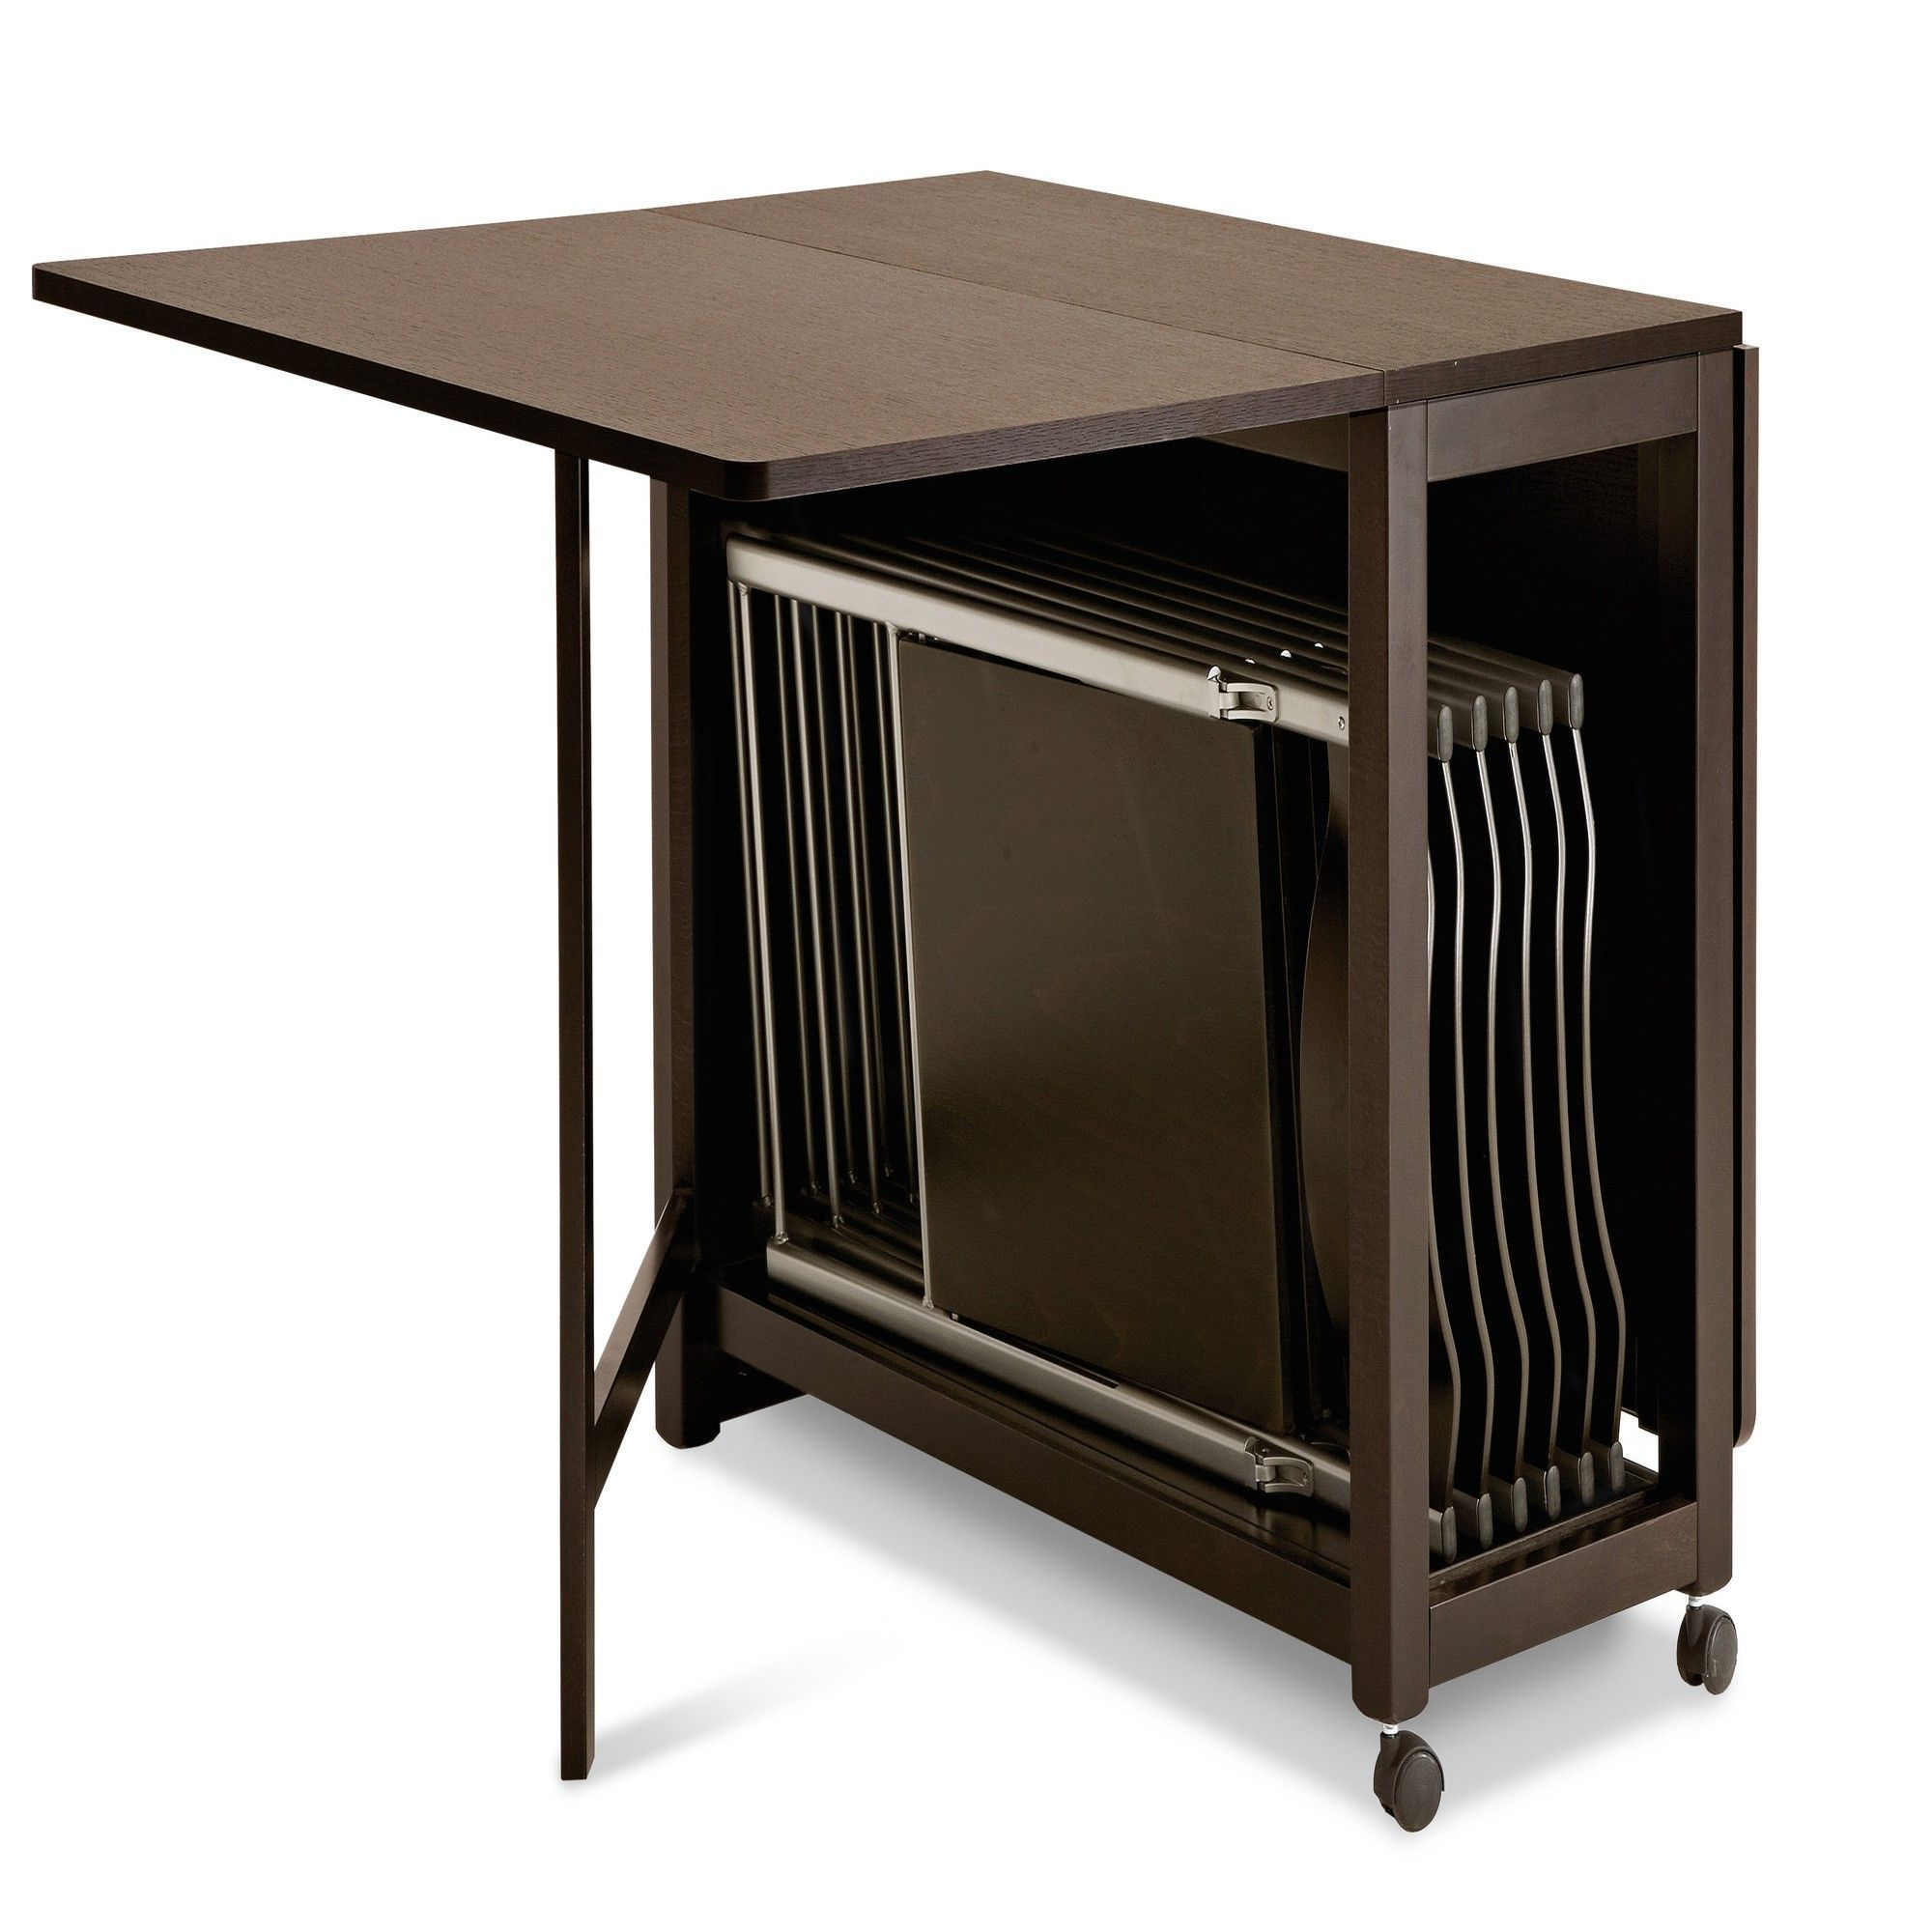 Furniture Inspirational Foldable Dinner Table Included With Foldable Chair Sets Tiny House Furniture Dining Room Small Space Saving Dining Table